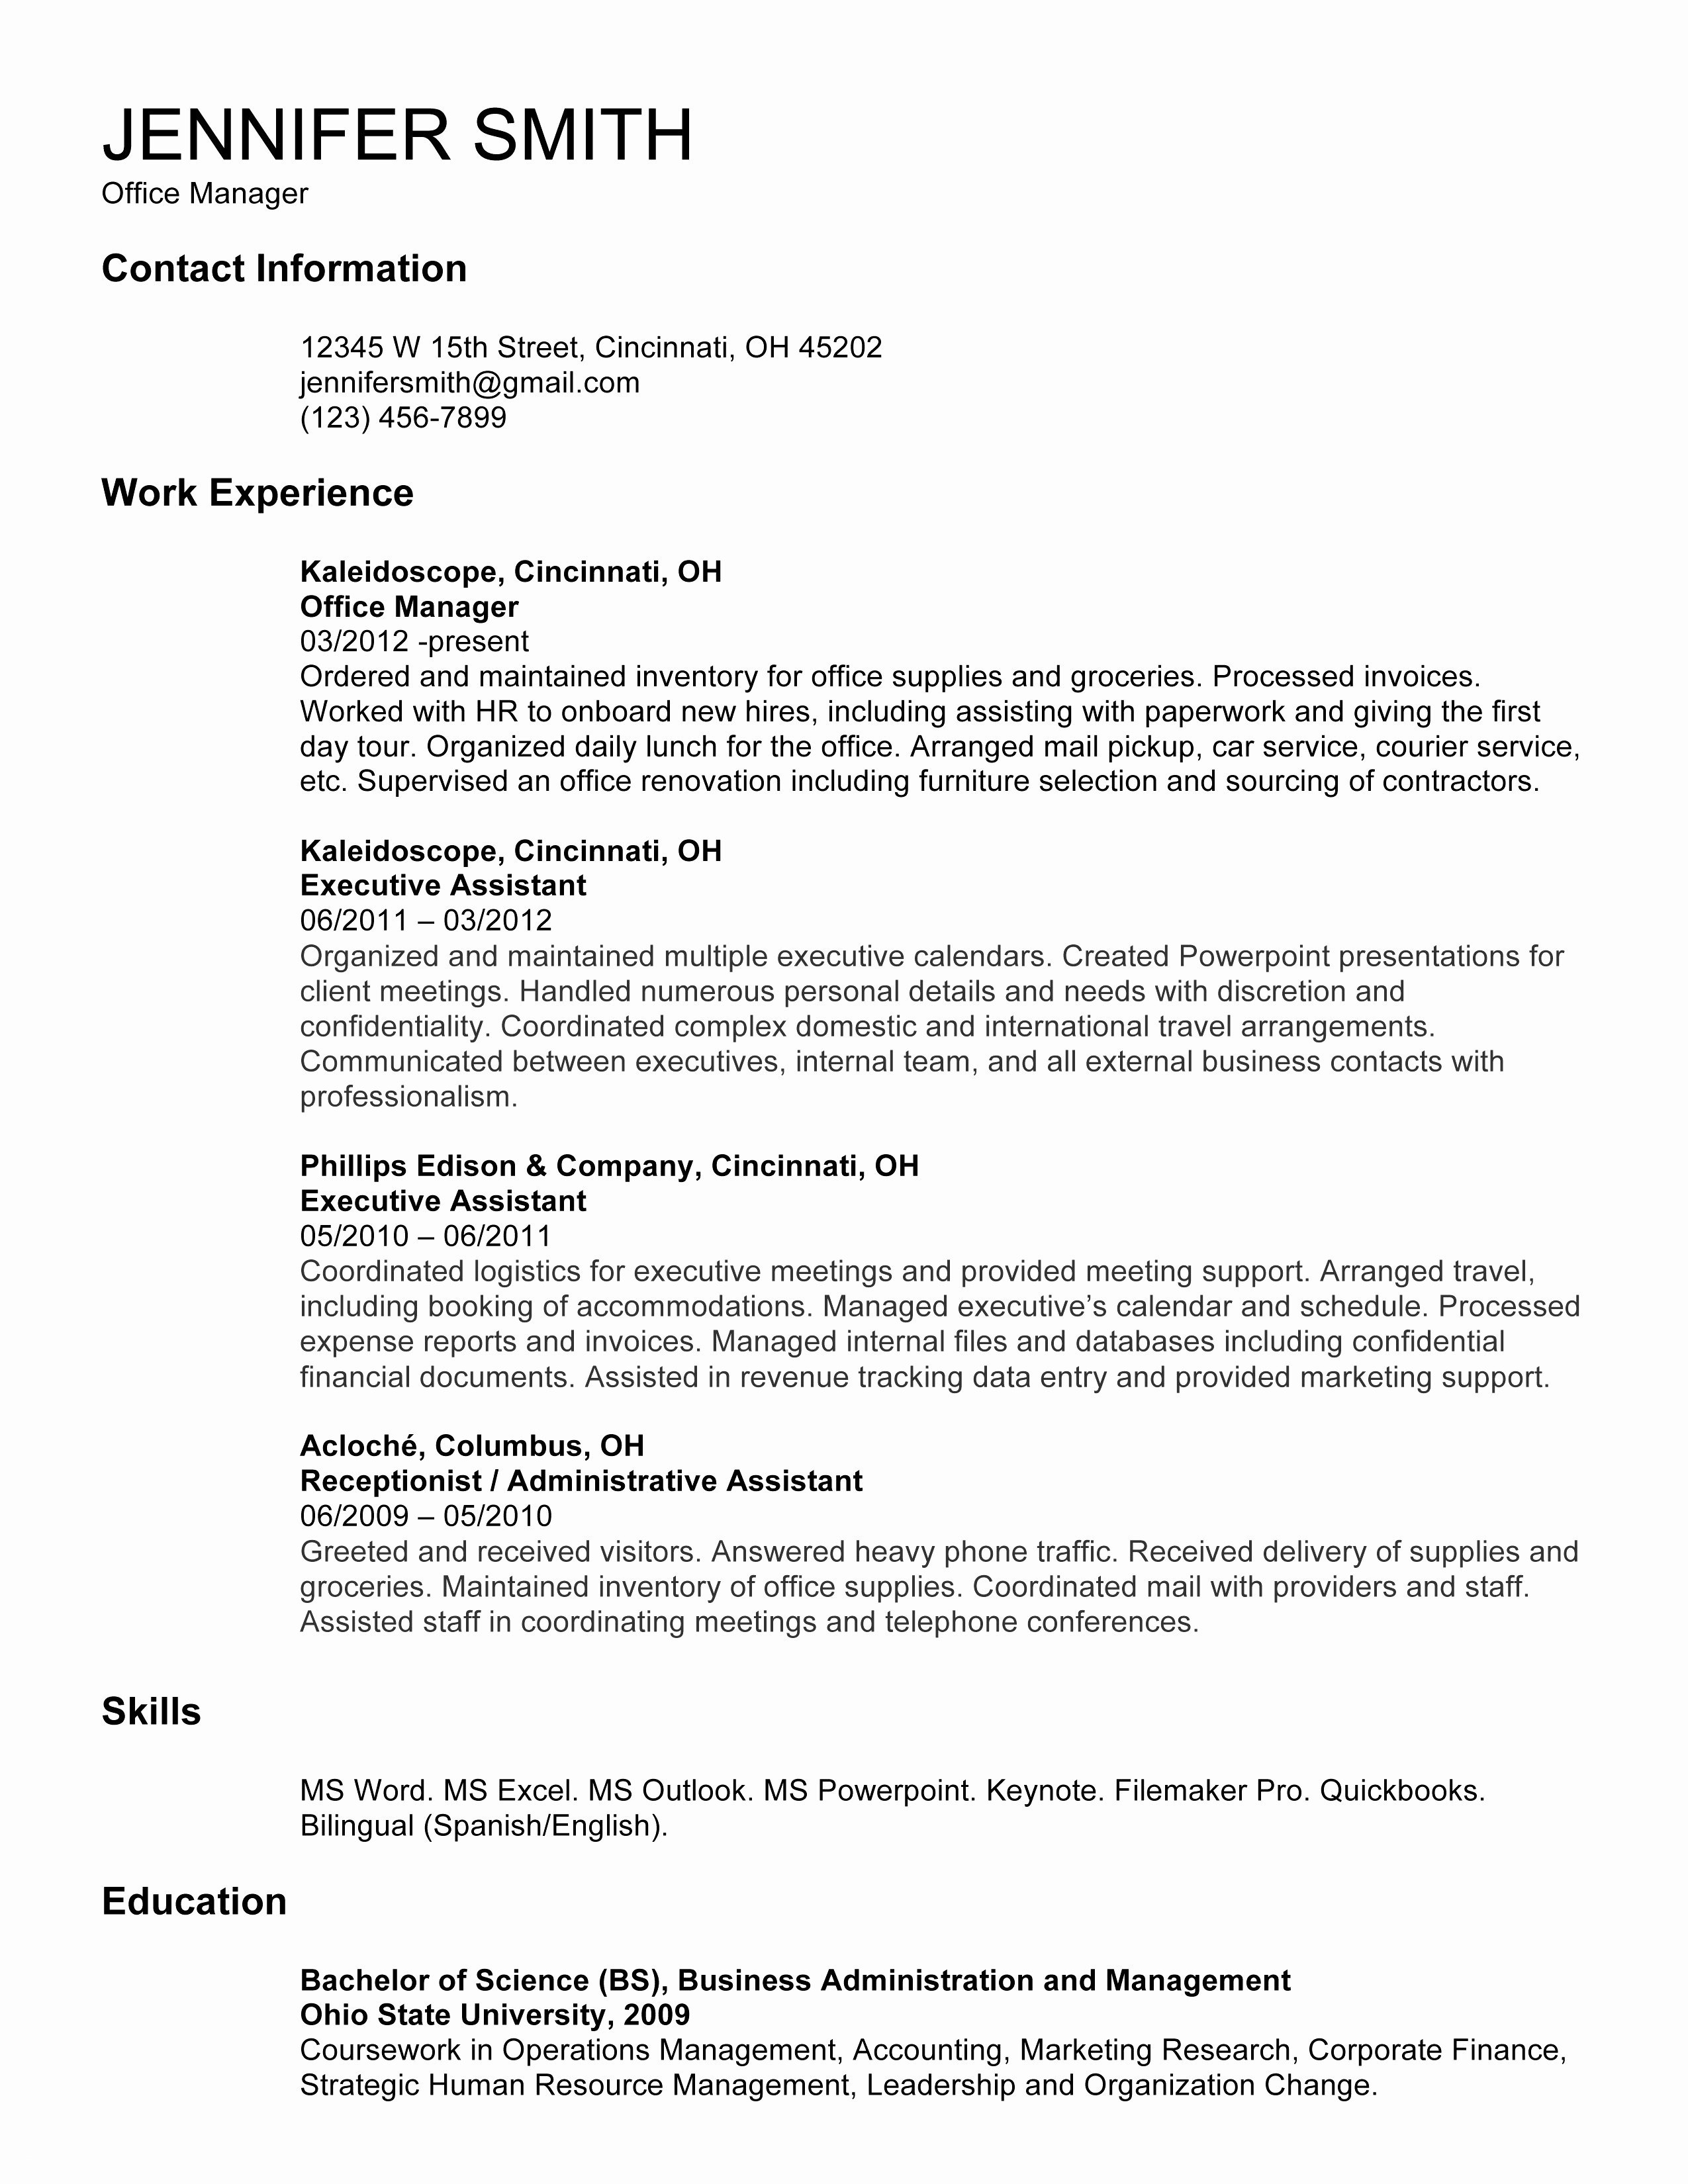 Restaurant Manager Duties for Resume - assistant Manager Duties for Resume Best Restaurant Manager Resume